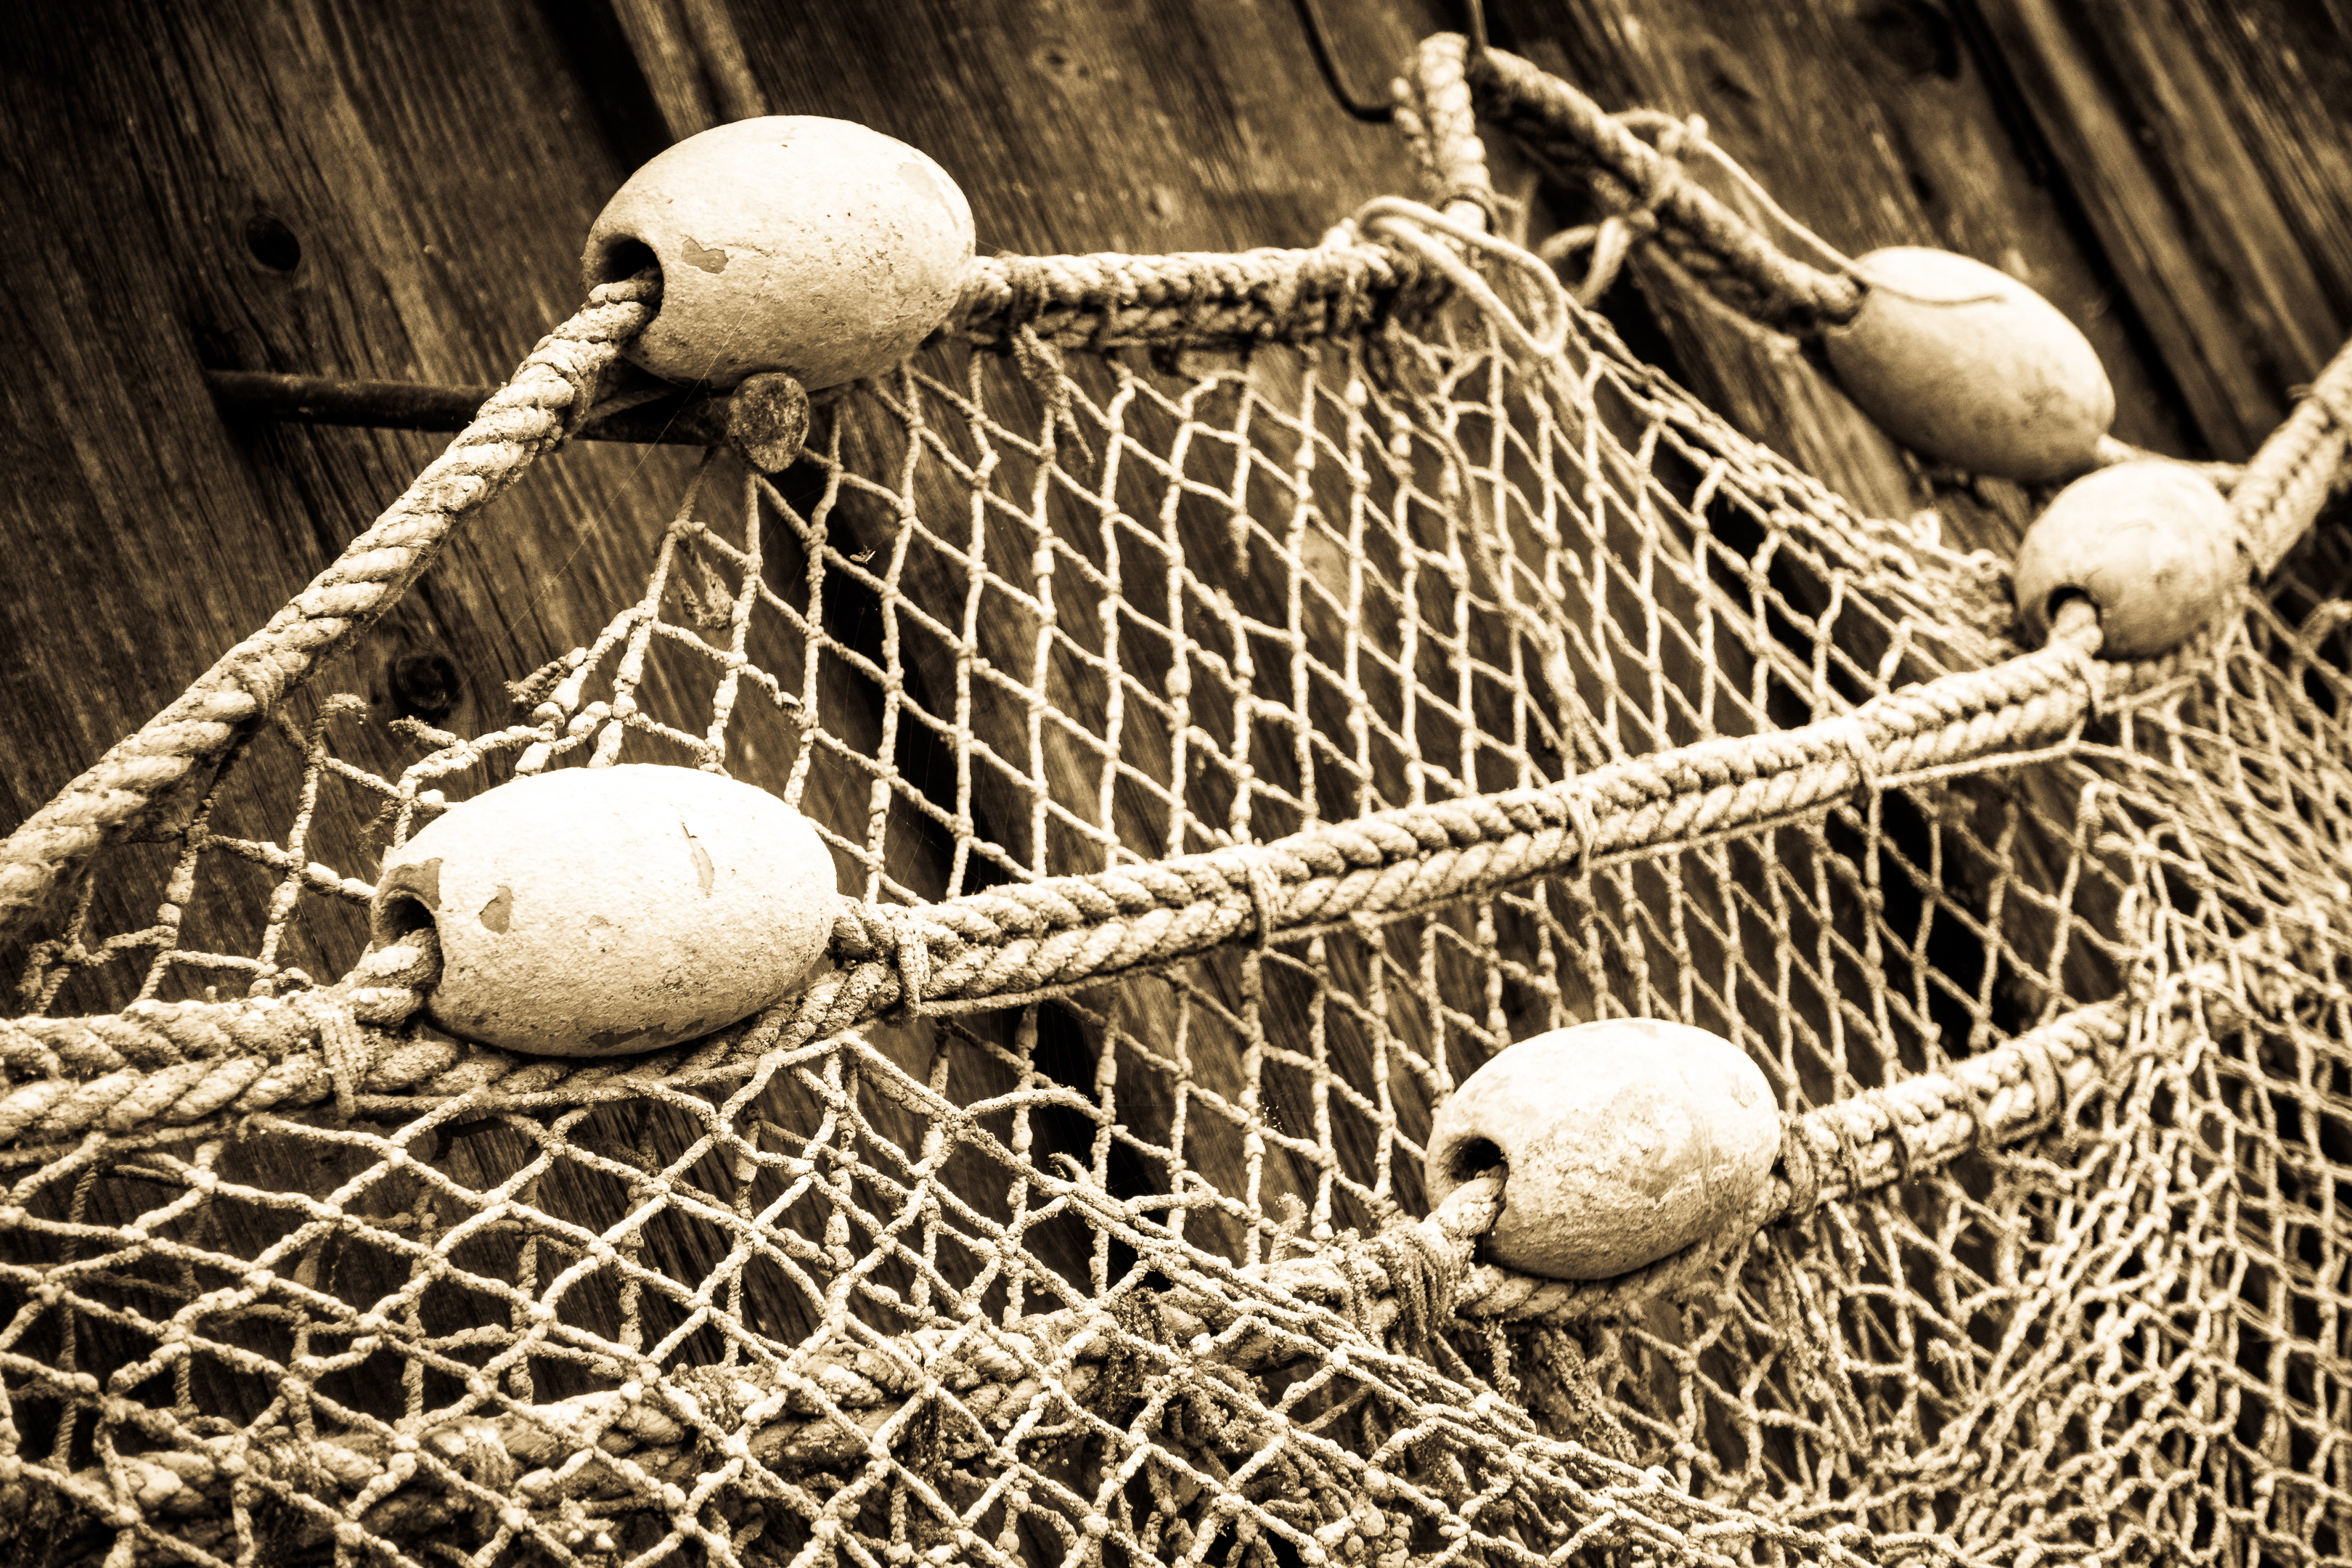 FooTToo by SHutterstock netting, old fashioned fisherman's net